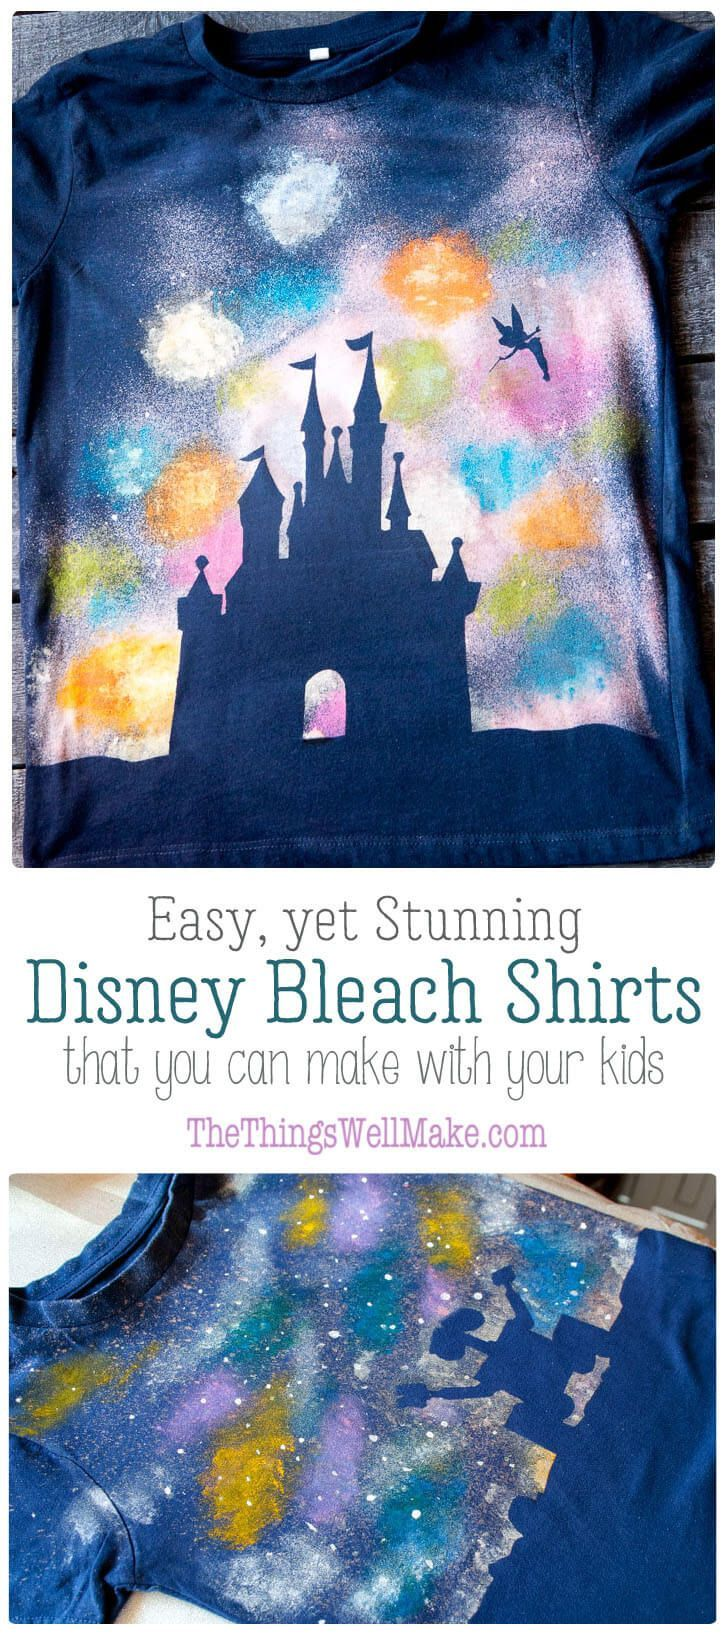 How to make a quick & easy galaxy Wall-E t-shirt, & other fun bleach spray shirts like a Disney castle silhouette shirt, that are embellished with fabric paints to make simple, yet stunning, designs. #walle #bleach #tshirt #Disney  via @thethingswellmake